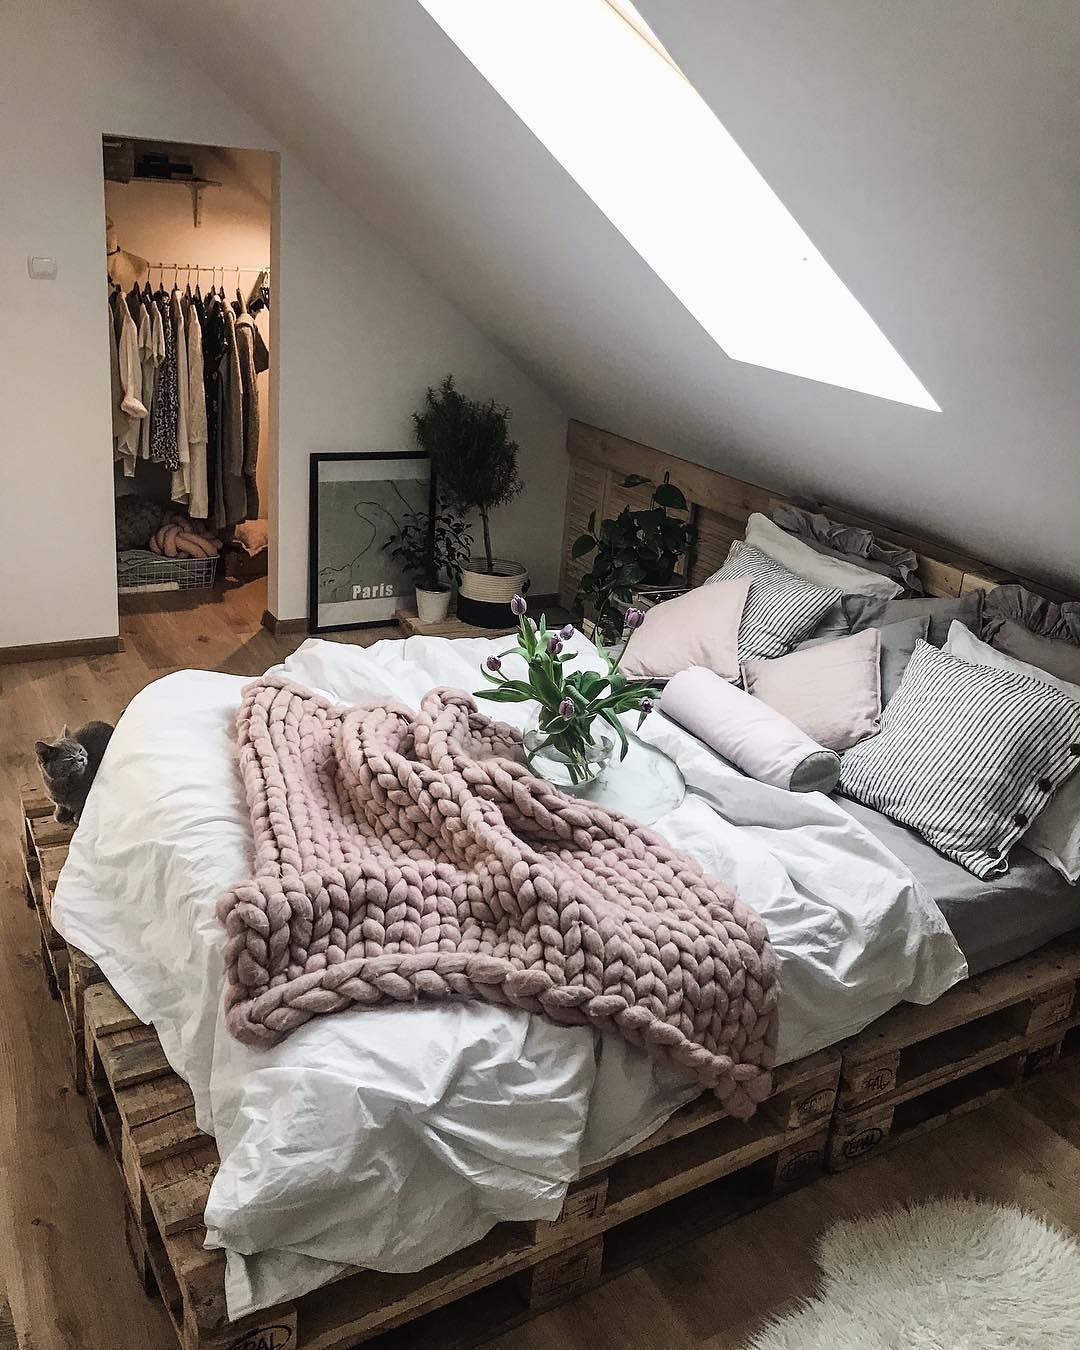 Tumblr Beds Wooden Pallet Beds Ideas New Room Ideas Pinterest